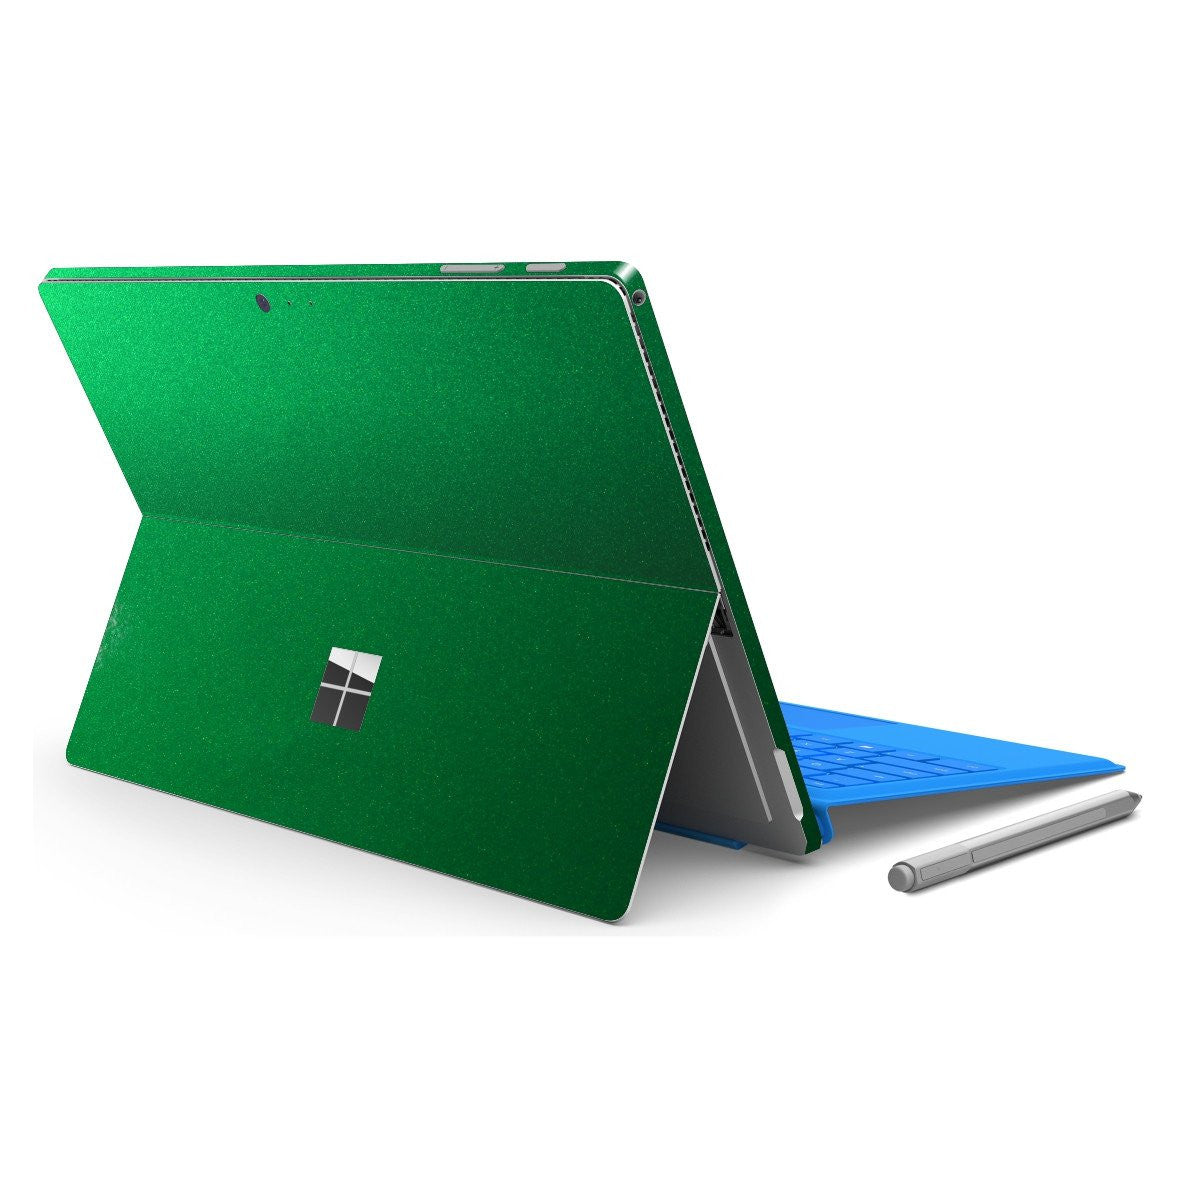 Microsoft Surface PRO 4 Glossy 3M Viper Green Tuning Skin Wrap Sticker Decal Cover Protector by EasySkinz